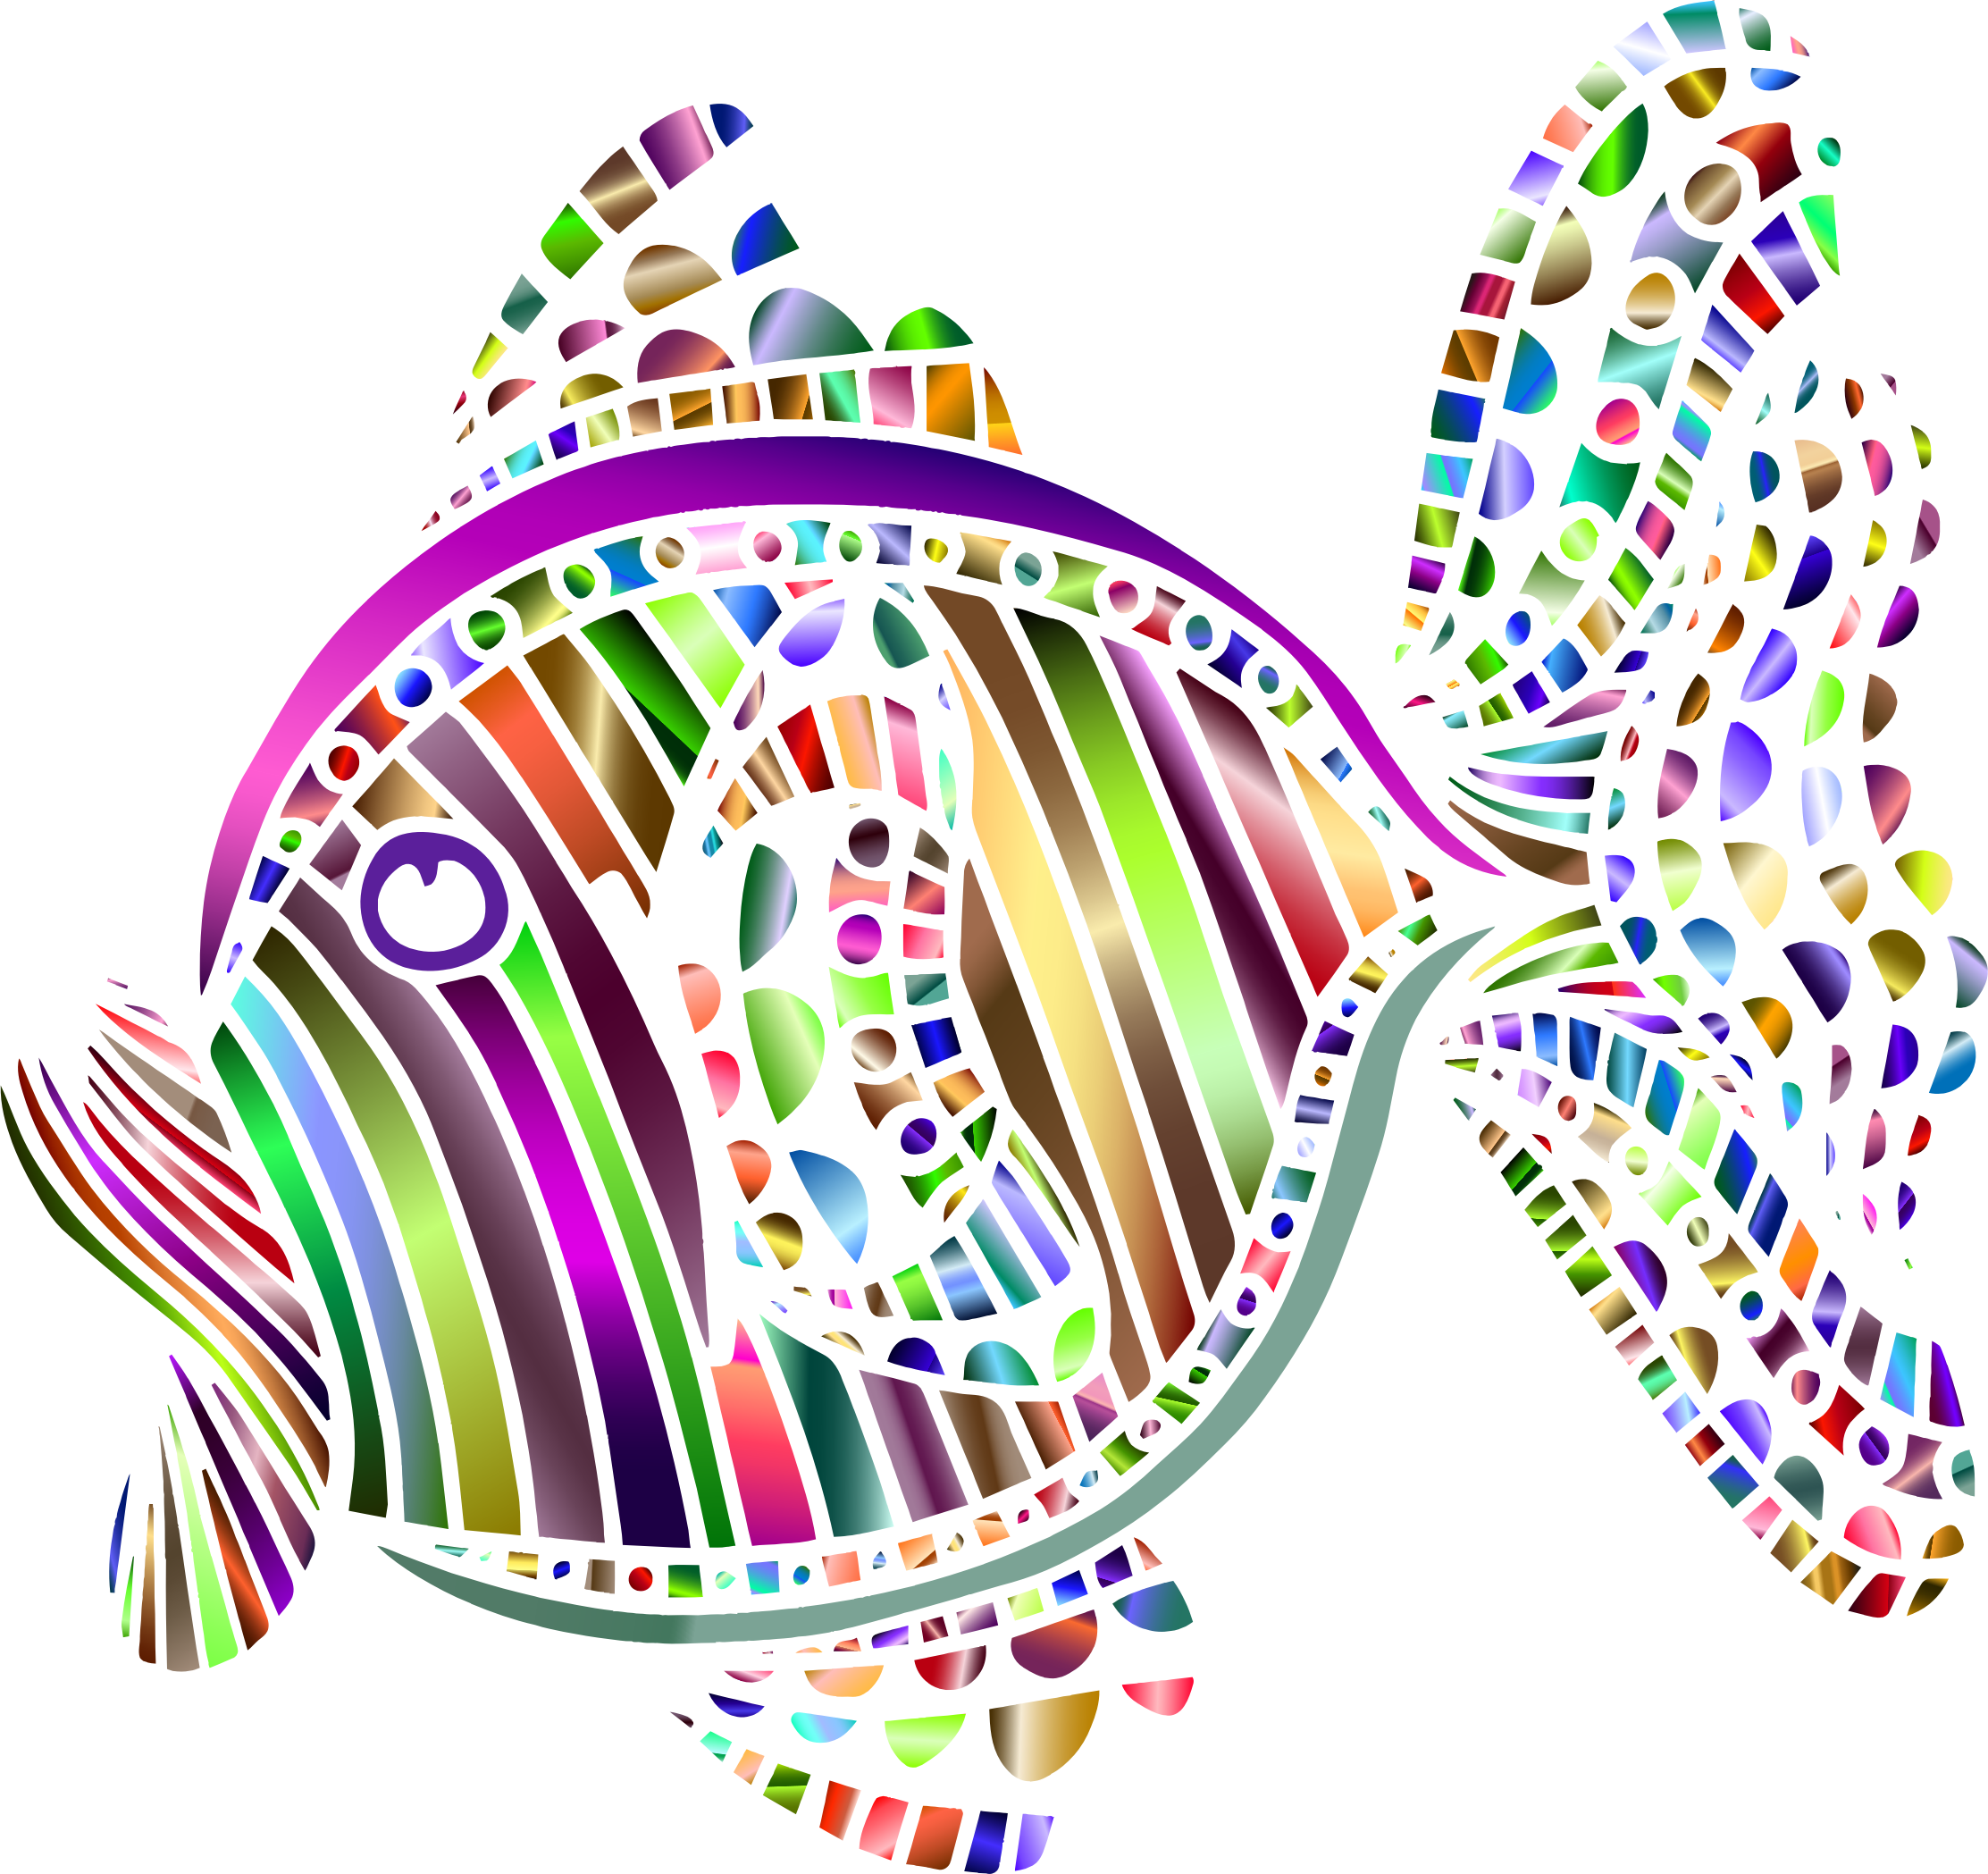 Original furthermore Abstract Colorful Fish moreover Glofish Fluorescent Fish Group Hi Res Xx in addition Clipart Of A Cute Griffin Mythical Creature Rearing Or Flying Royalty Free Vector Illustration together with Glossy Web Buttons. on clipart rainbow fish